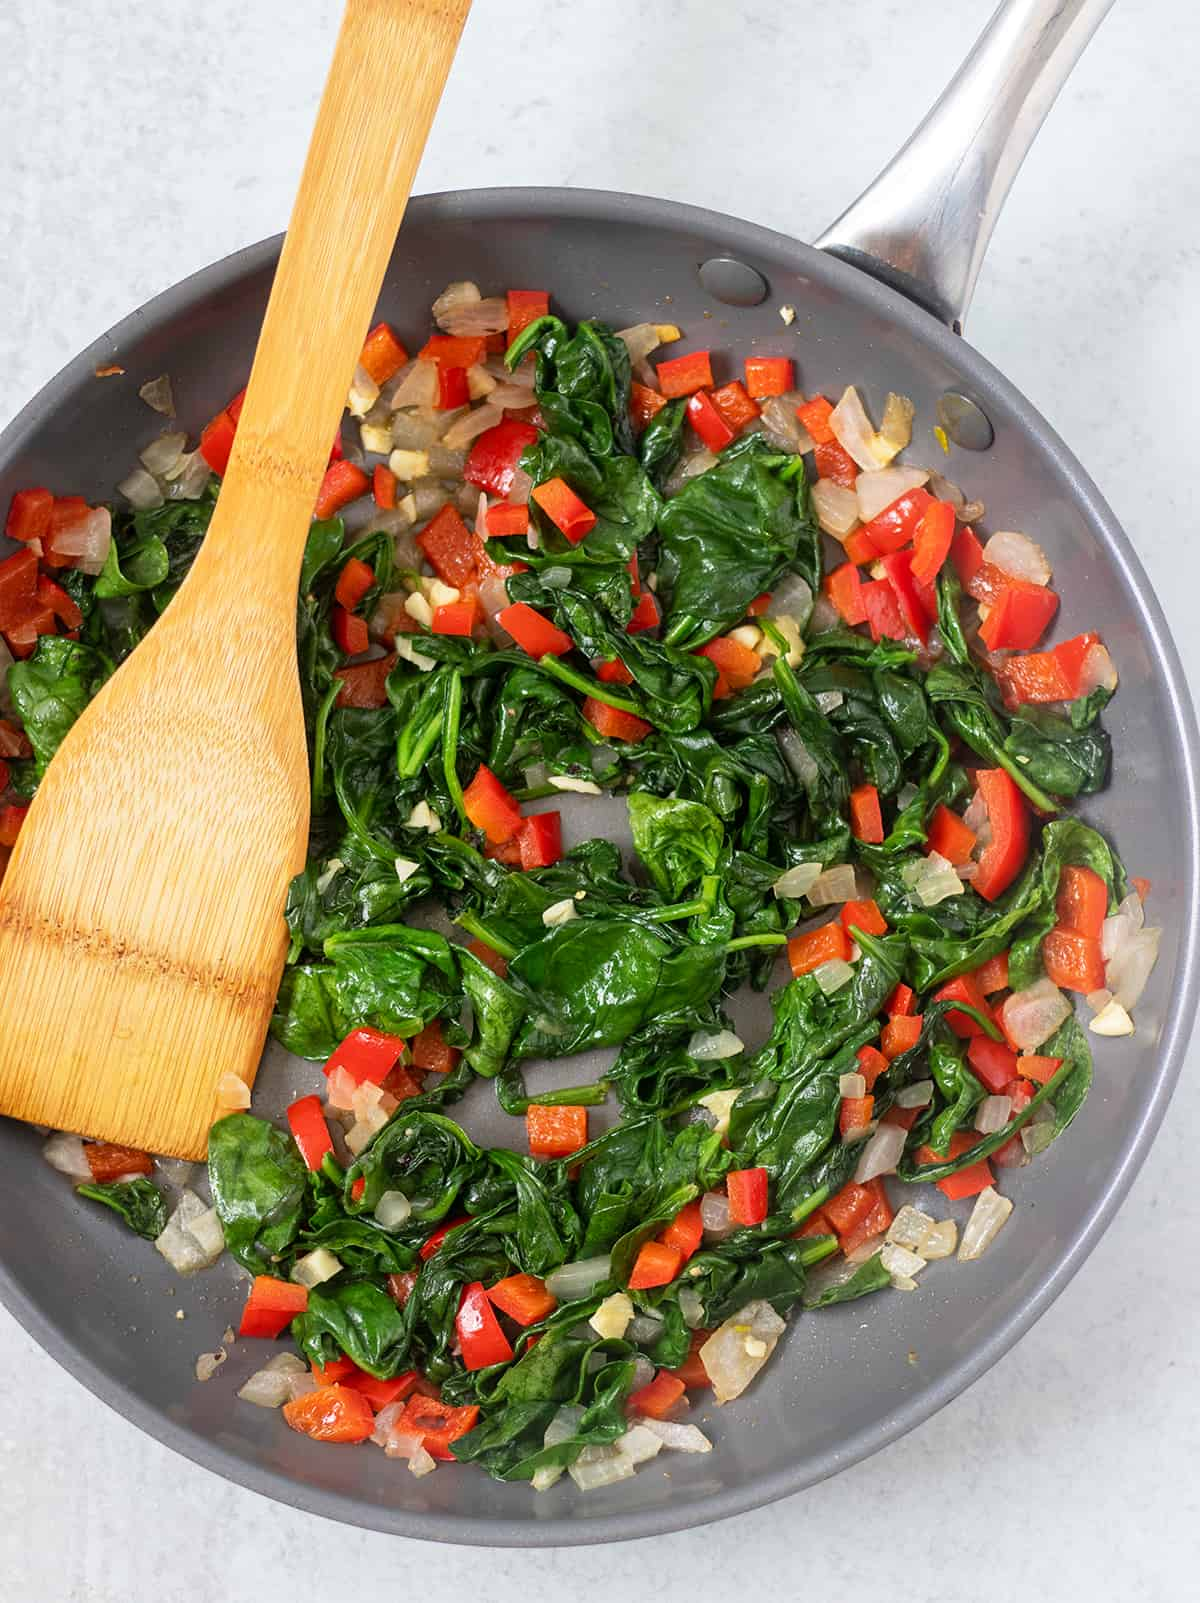 spinach, onion, garlic, and bell pepper being cooked in pan with wooden spoon